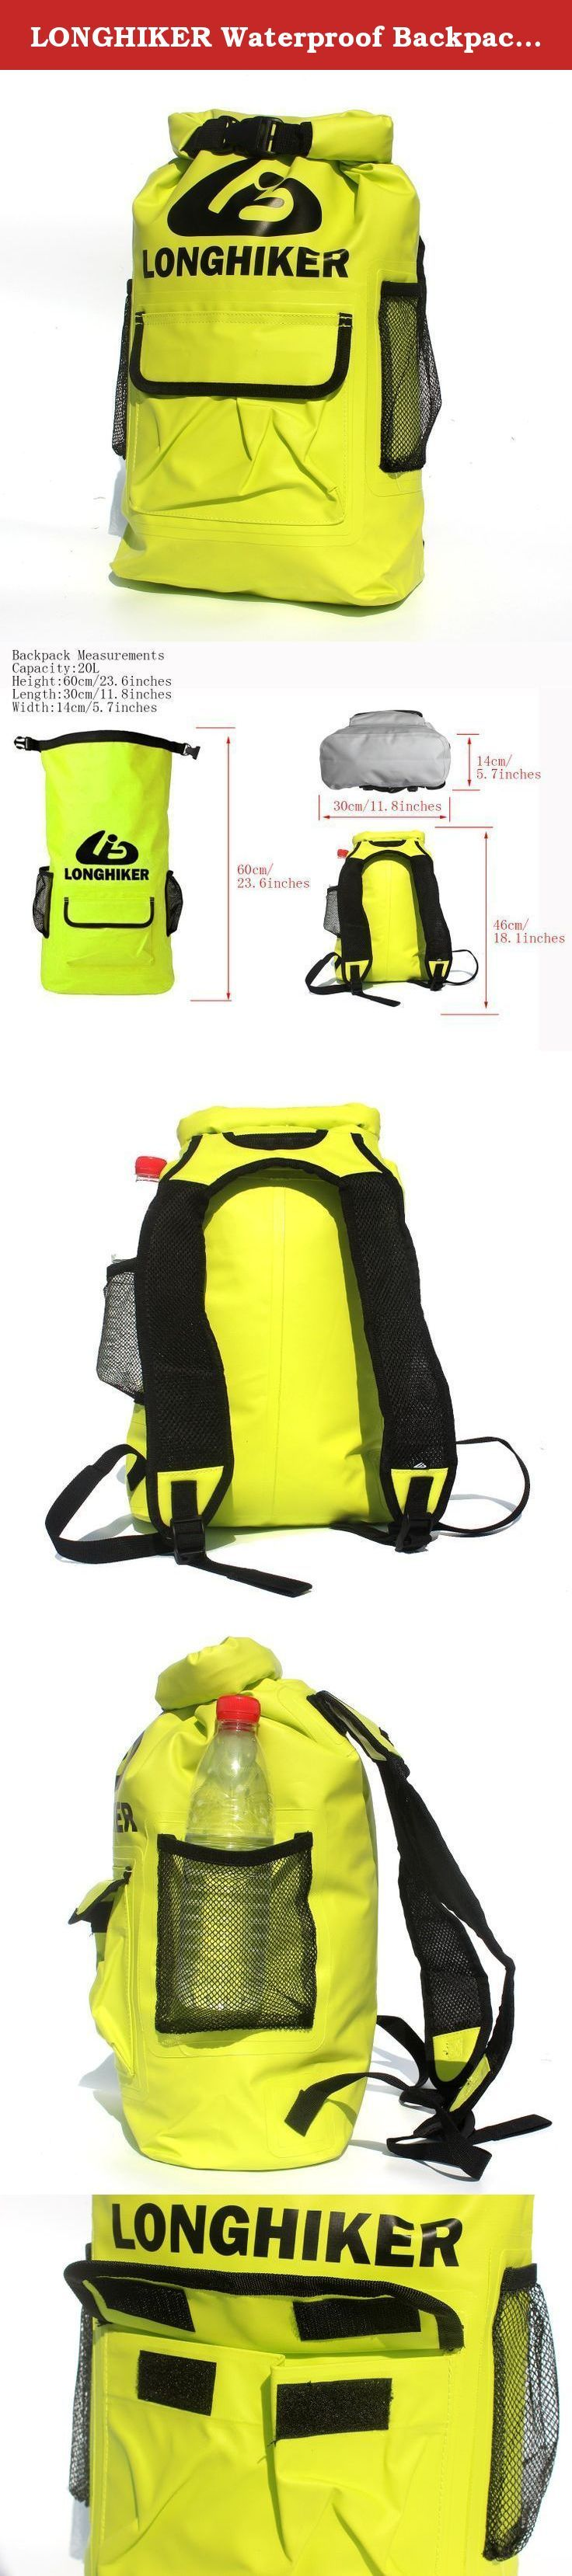 """LONGHIKER Waterproof Backpack Dry Bag -Padded Shoulder Straps-Mesh Side Pockets-Front Pocket.Safety Float for Open Water Swimmers Triathletes Kayakers and Snorkelers (Bright Yellow, 20L). LONGHIKER Young Men's """"Surf stash"""" roll top sealable dry bag with a large main compartment, 3 exterior storage pockets, adjustable external gear straps, 1 interior zip mesh pockets for organization, and padded shoulder straps. Keep your gear dry on the water with this LONGHIKER Waterproof Backpack..."""